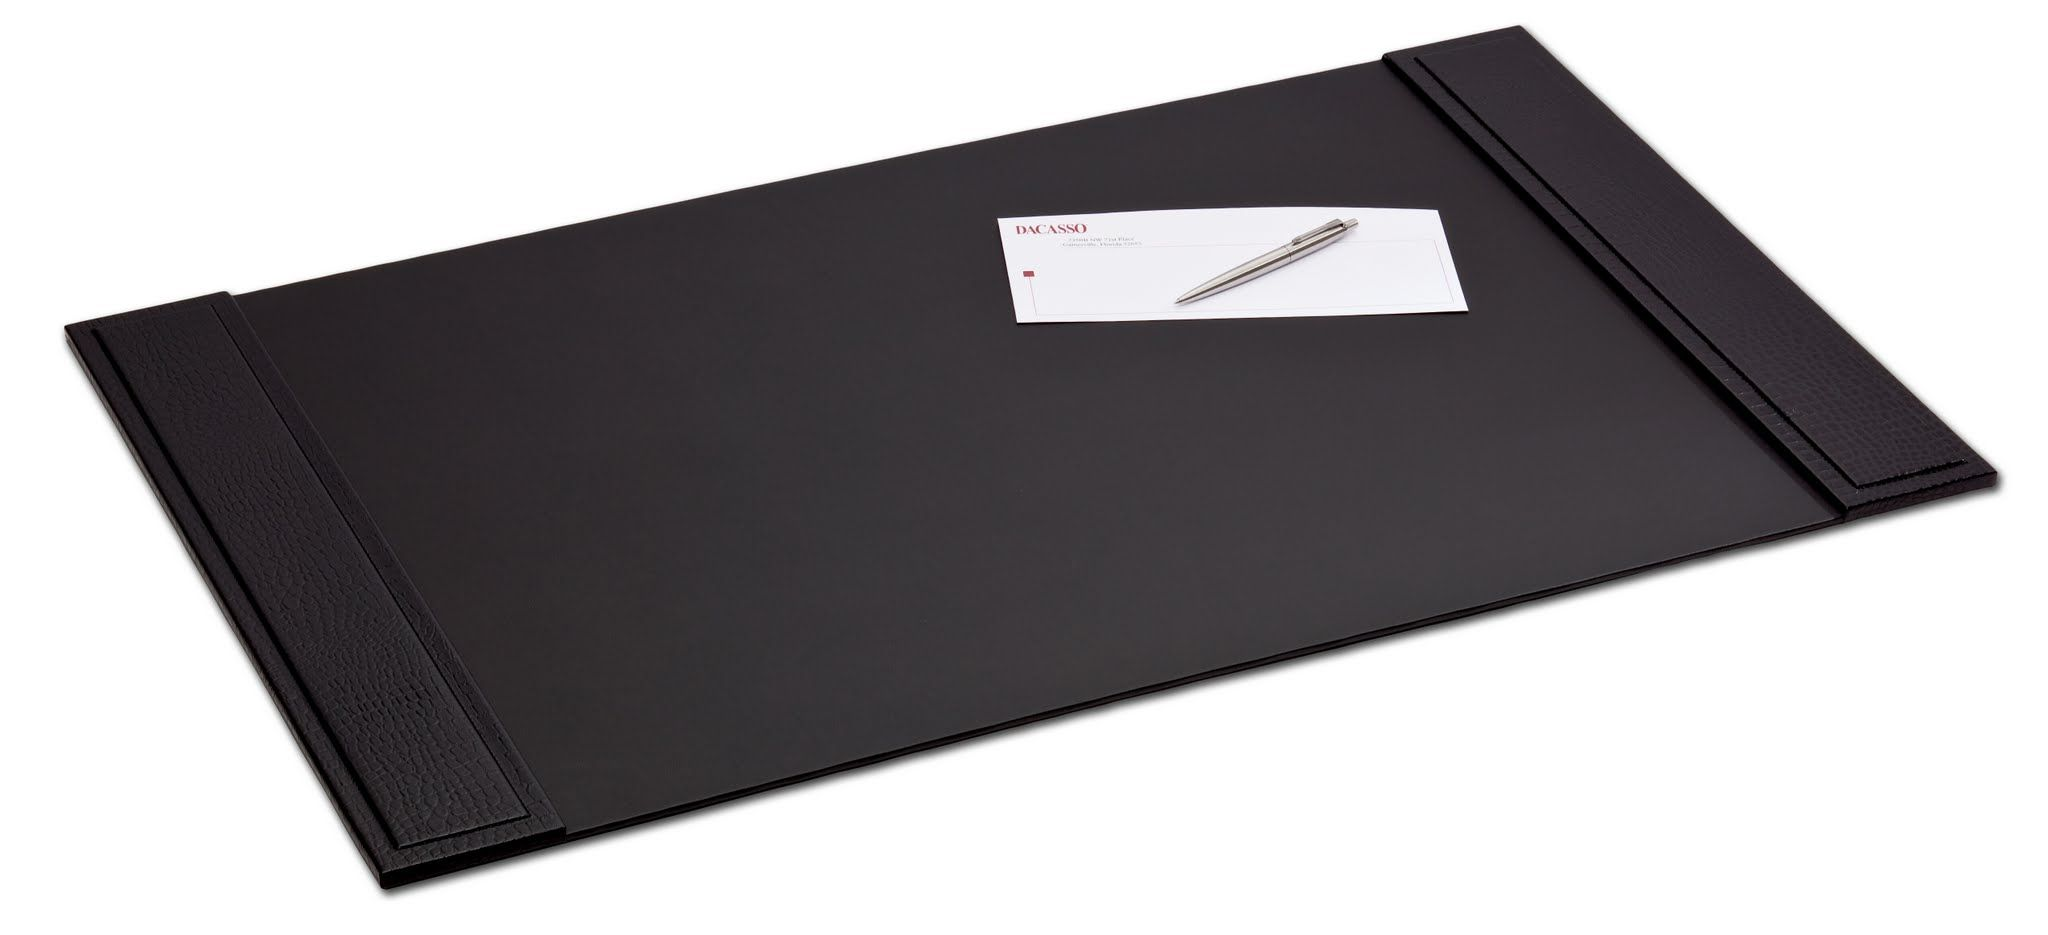 Black Crocodile Embossed Leather 34″ x 20″ Side-Rail Desk Pad, $149.00  http://www.dacasso.com/products/p2201-black-crocodile-embossed-leather-34-x-20-side-rail-desk-pad/